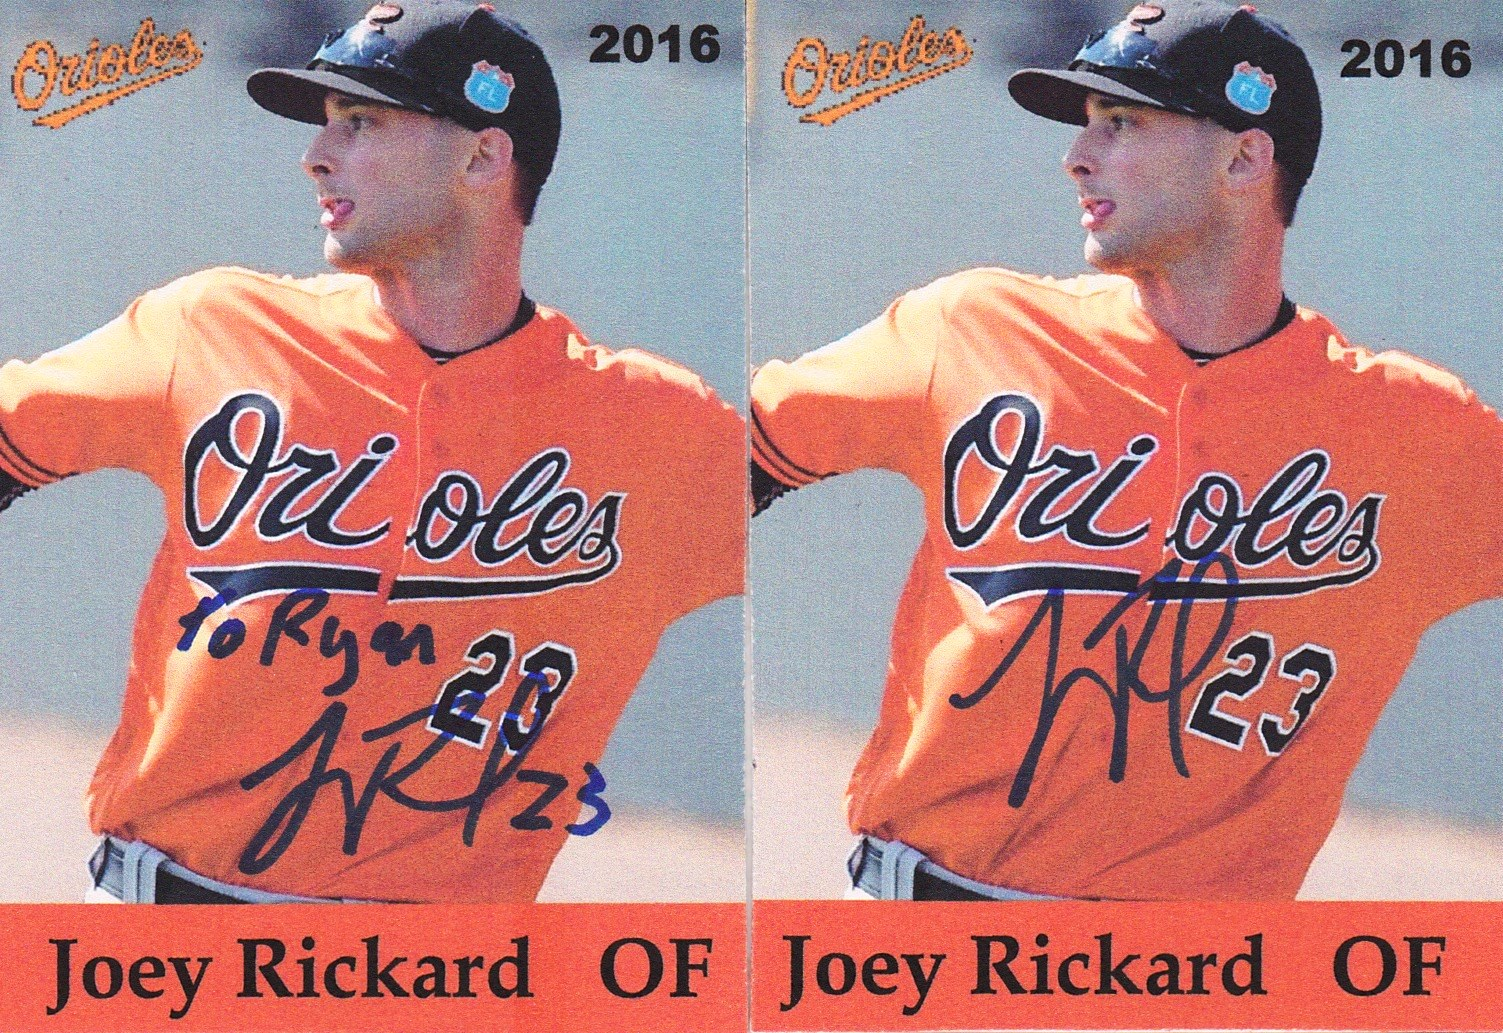 c69baaf19 The Great Orioles Autograph Project  Orioles Spring Training Phenom ...